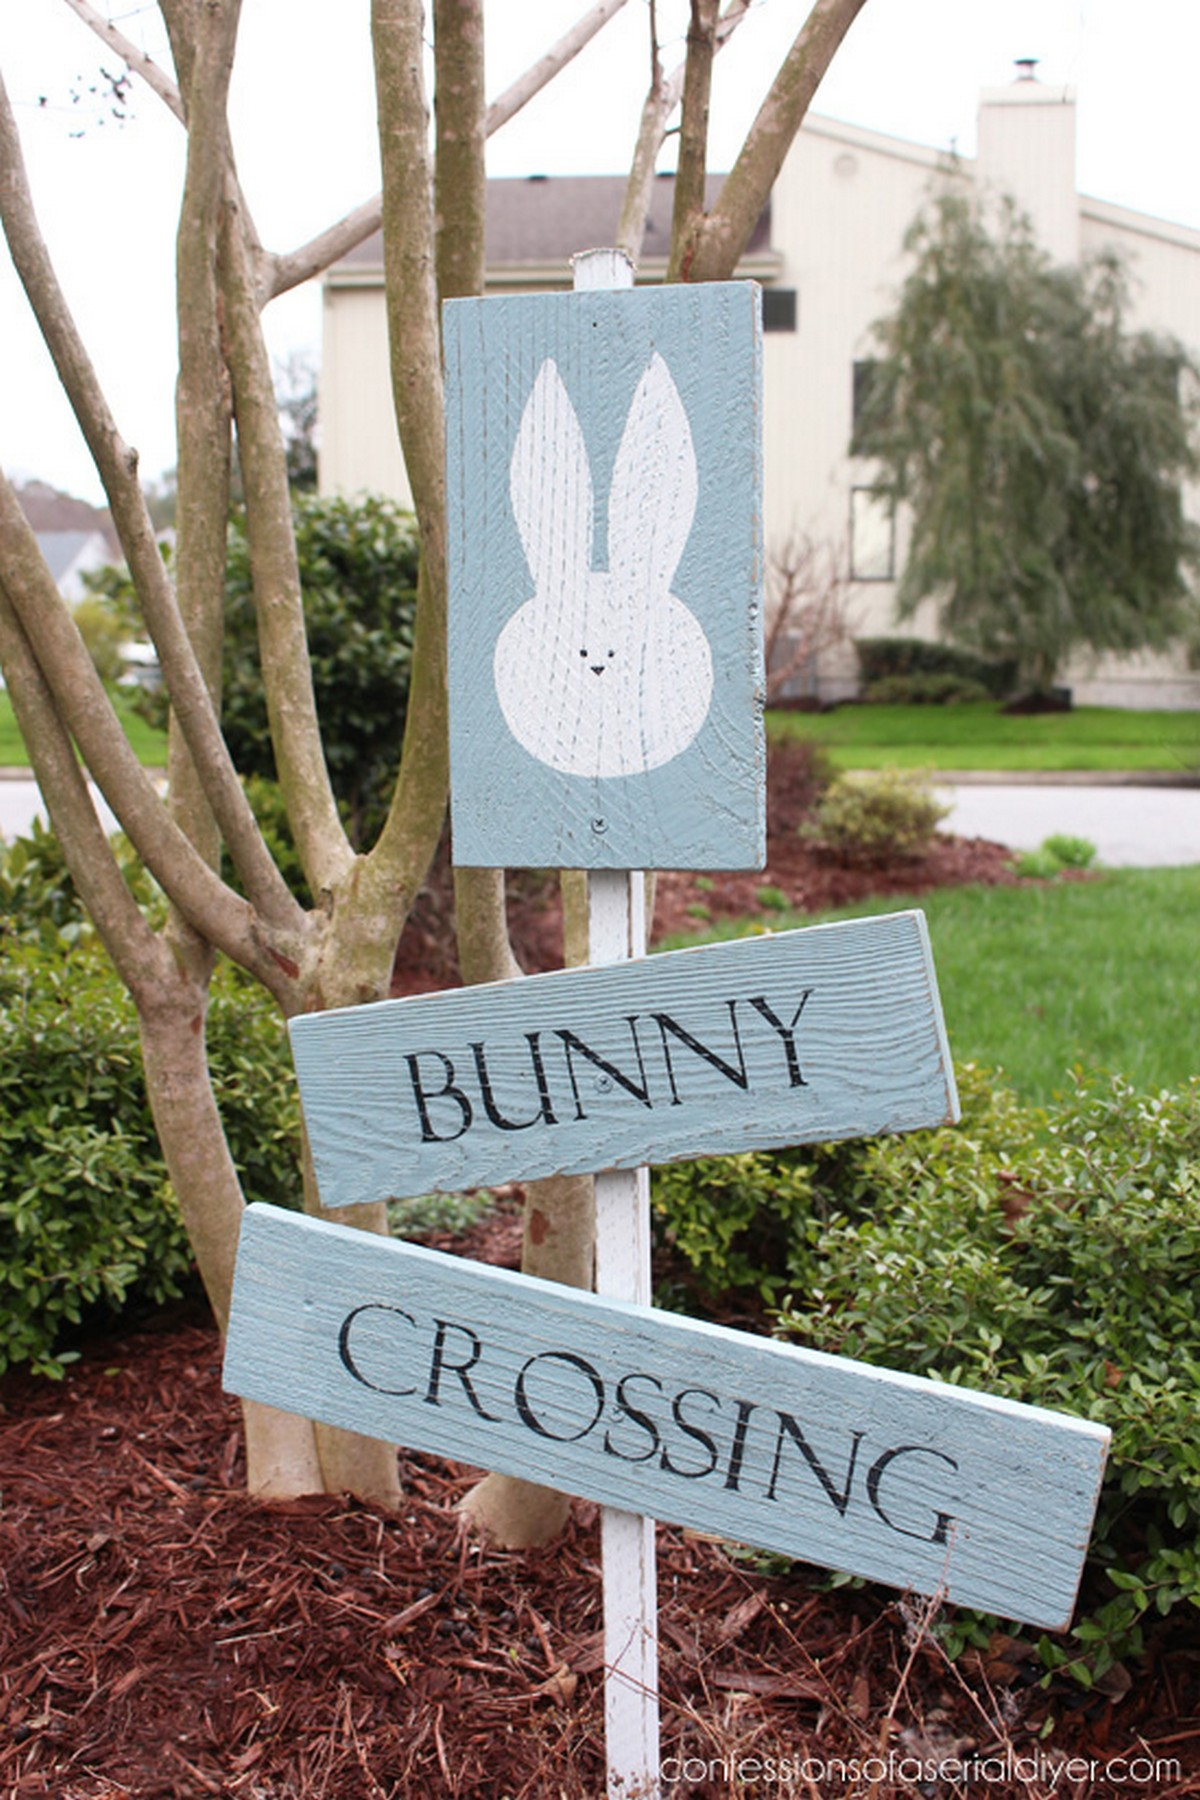 It's time to think over Easter décor and get ready for it not to hurry up when it comes. What signs are great for Easter? Of course, those with bunnies, chickens and eggs!